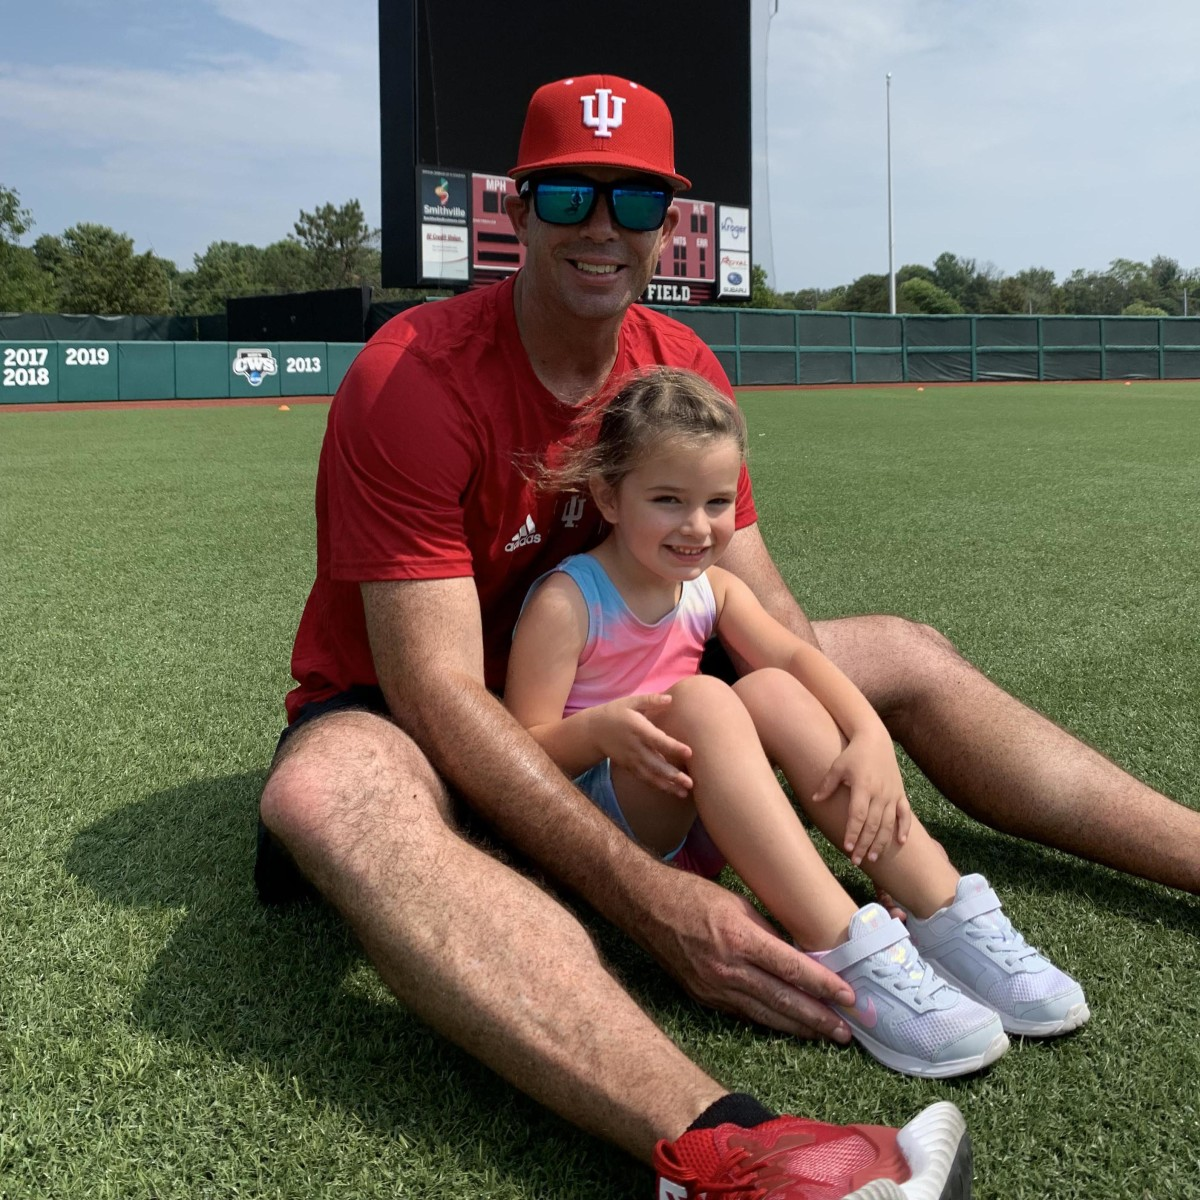 Indiana pitching coach Dustin Glant with his 4-year-old daughter Evelyn at Bart Kaufman Field.